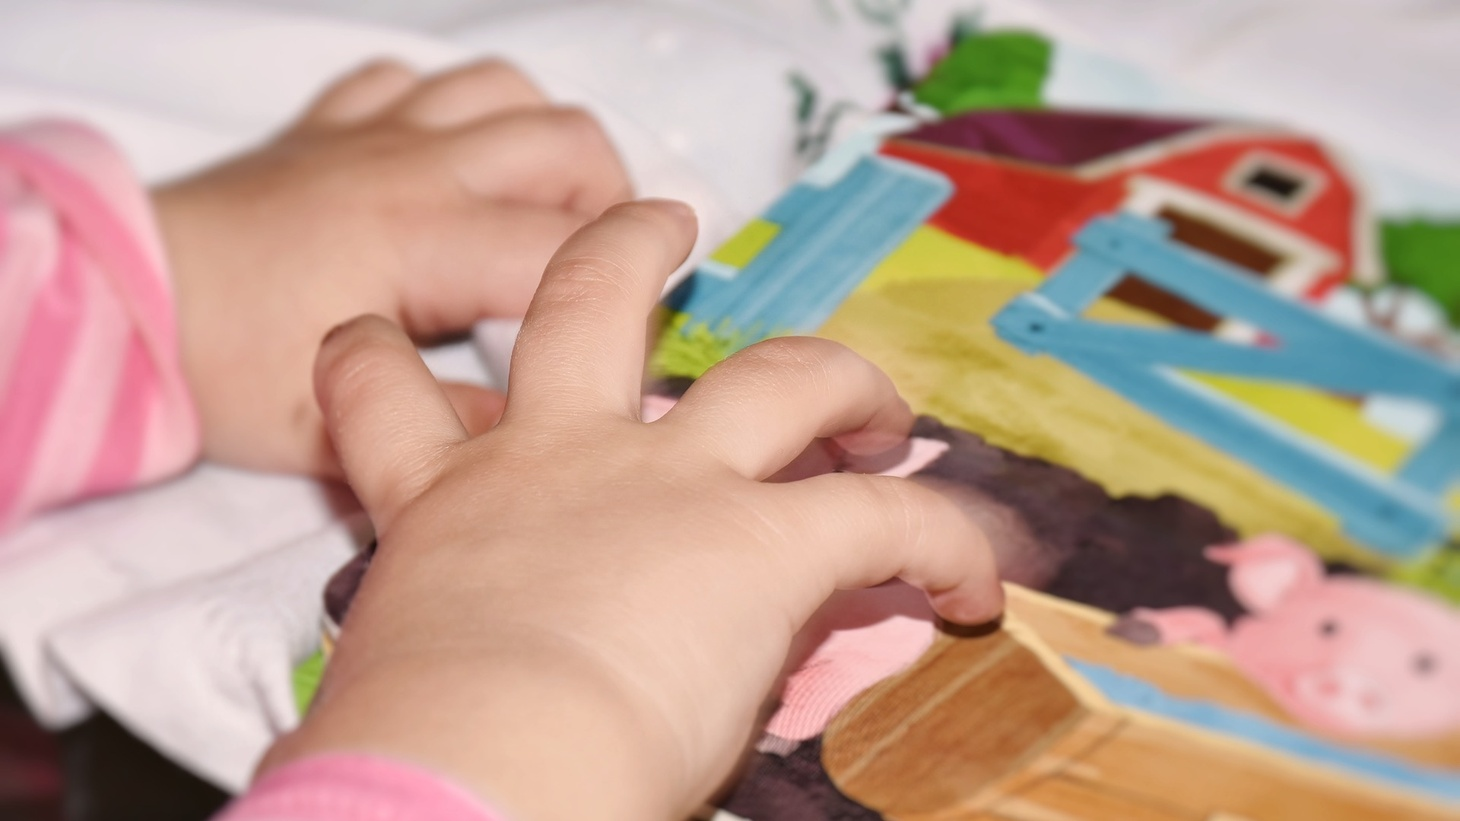 A small child's hands.